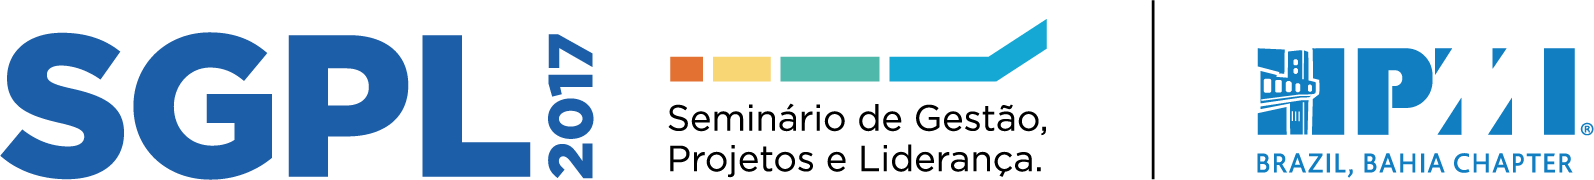 SGPL-2017-LOGO-FUNDOTRANSPARENTE